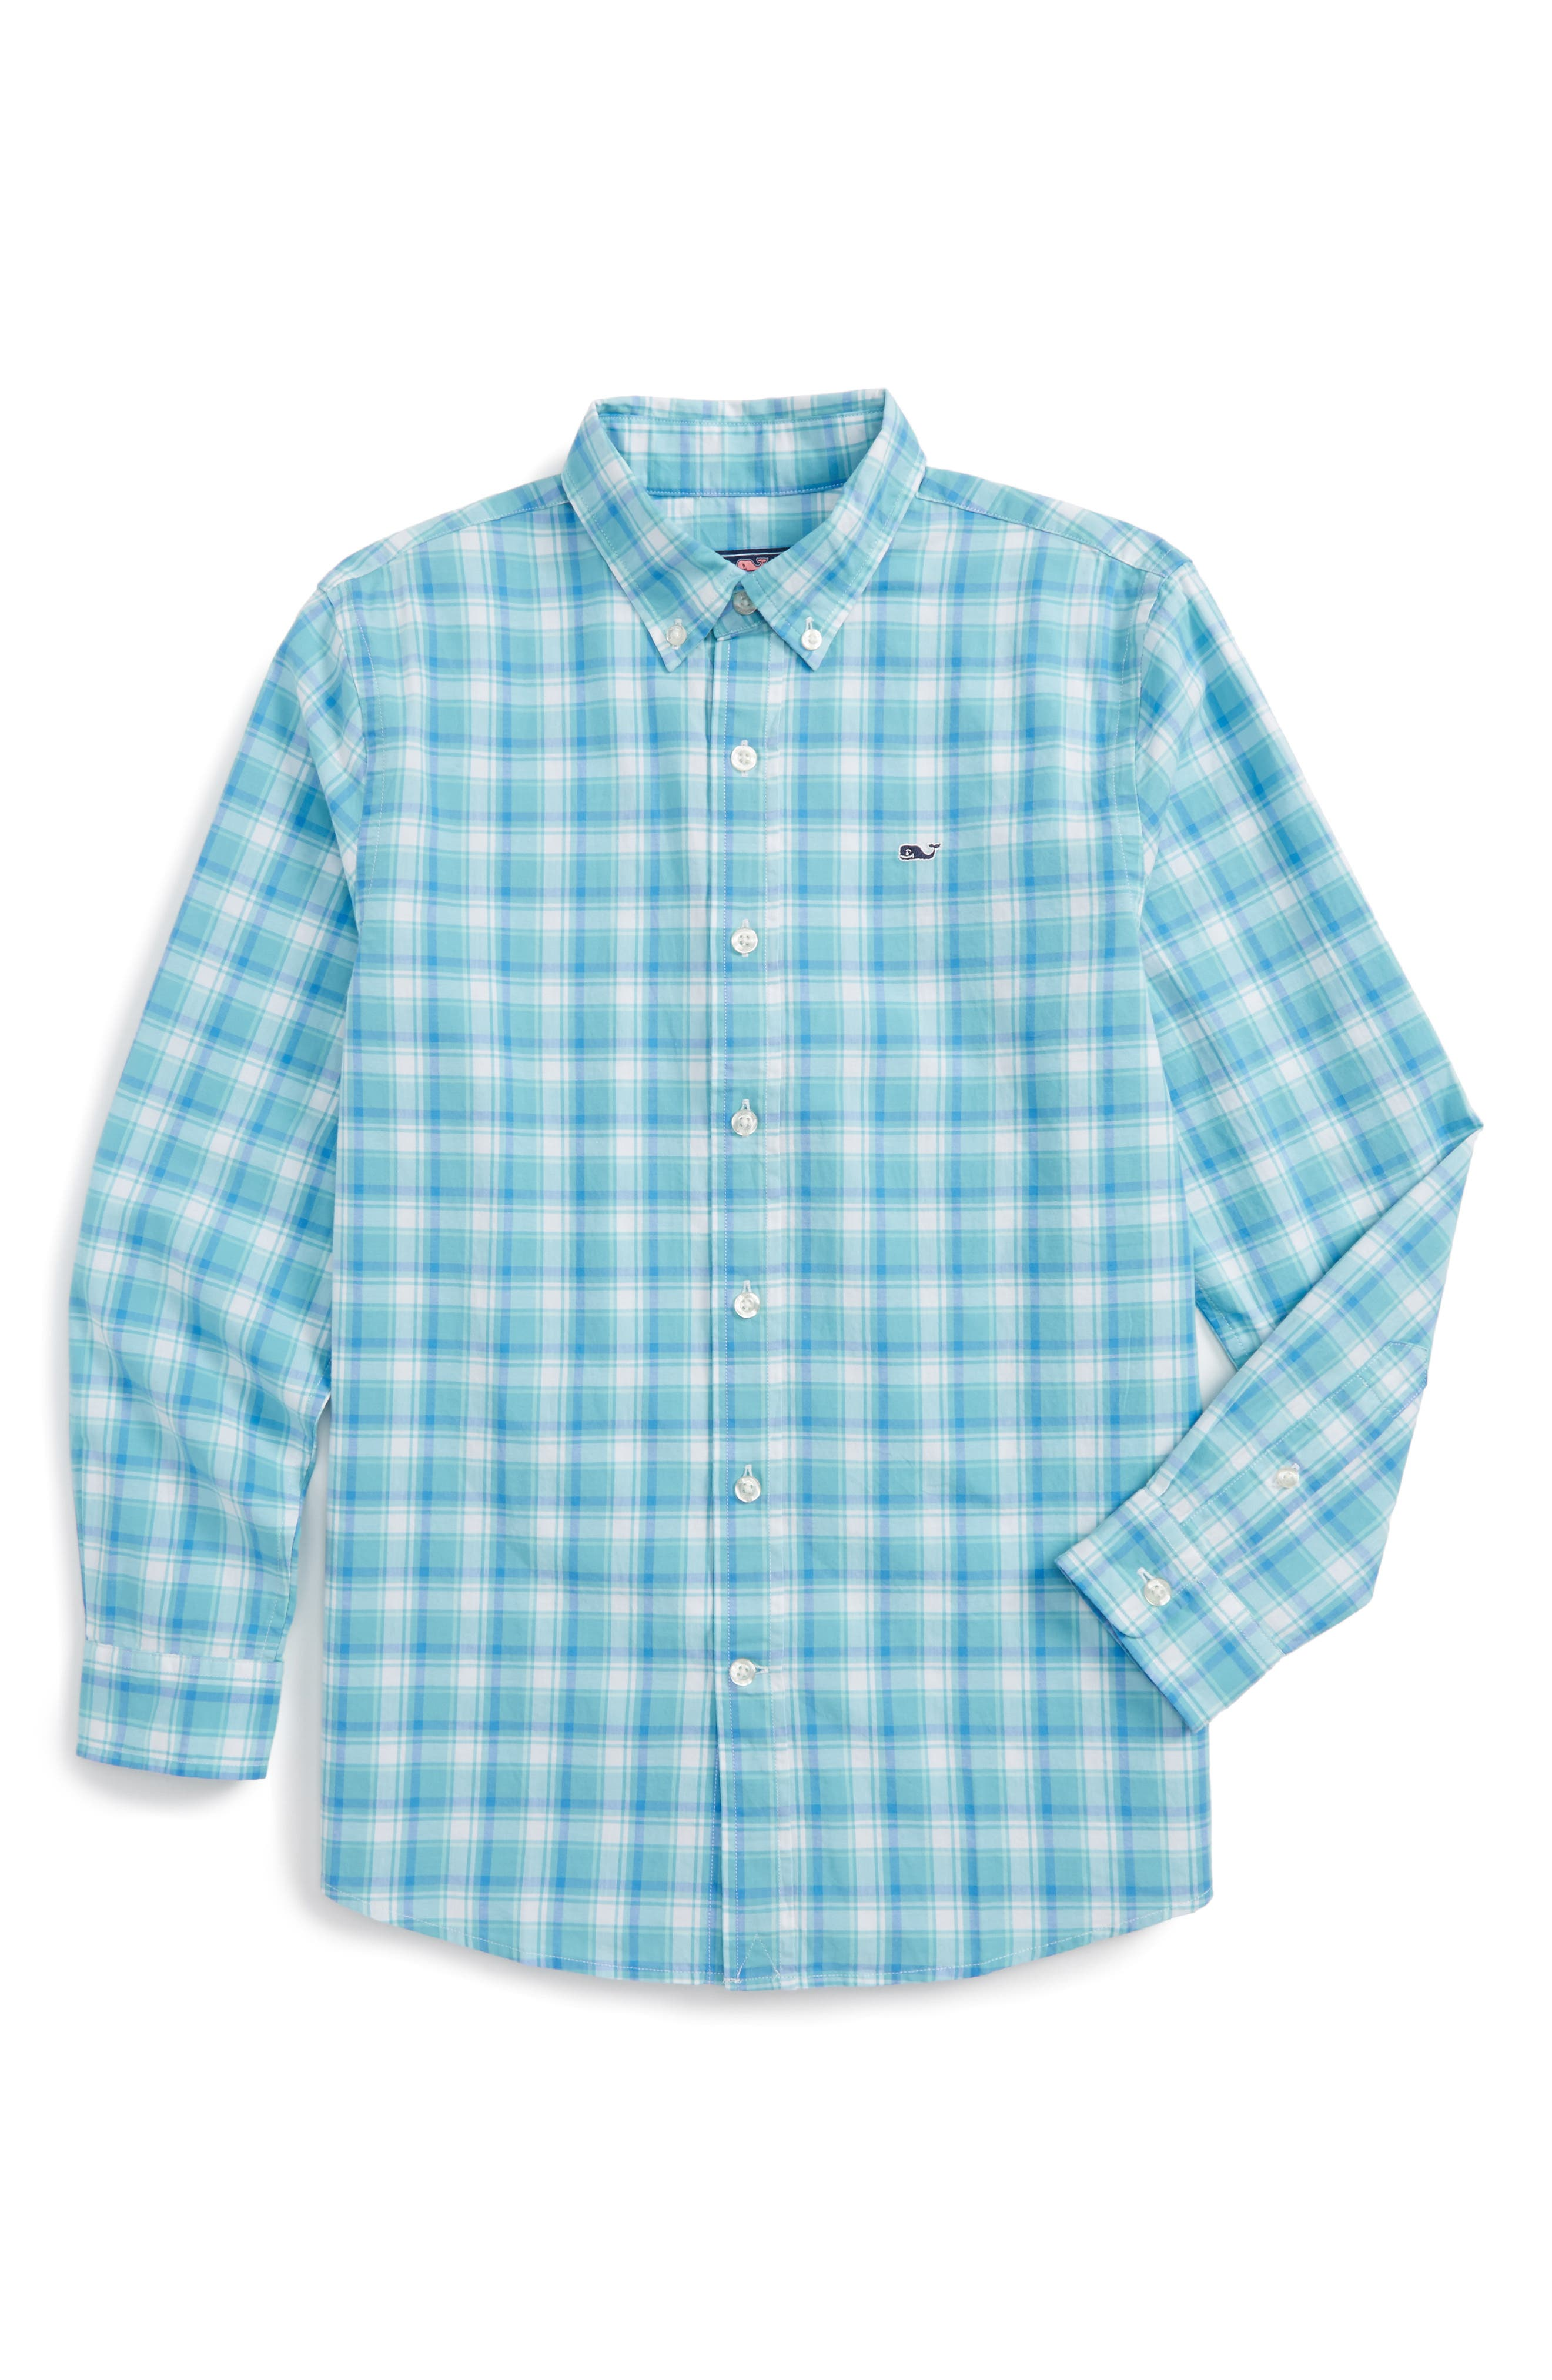 Main Image - vineyard vines Point Plaid Cotton Shirt (Big Boys)